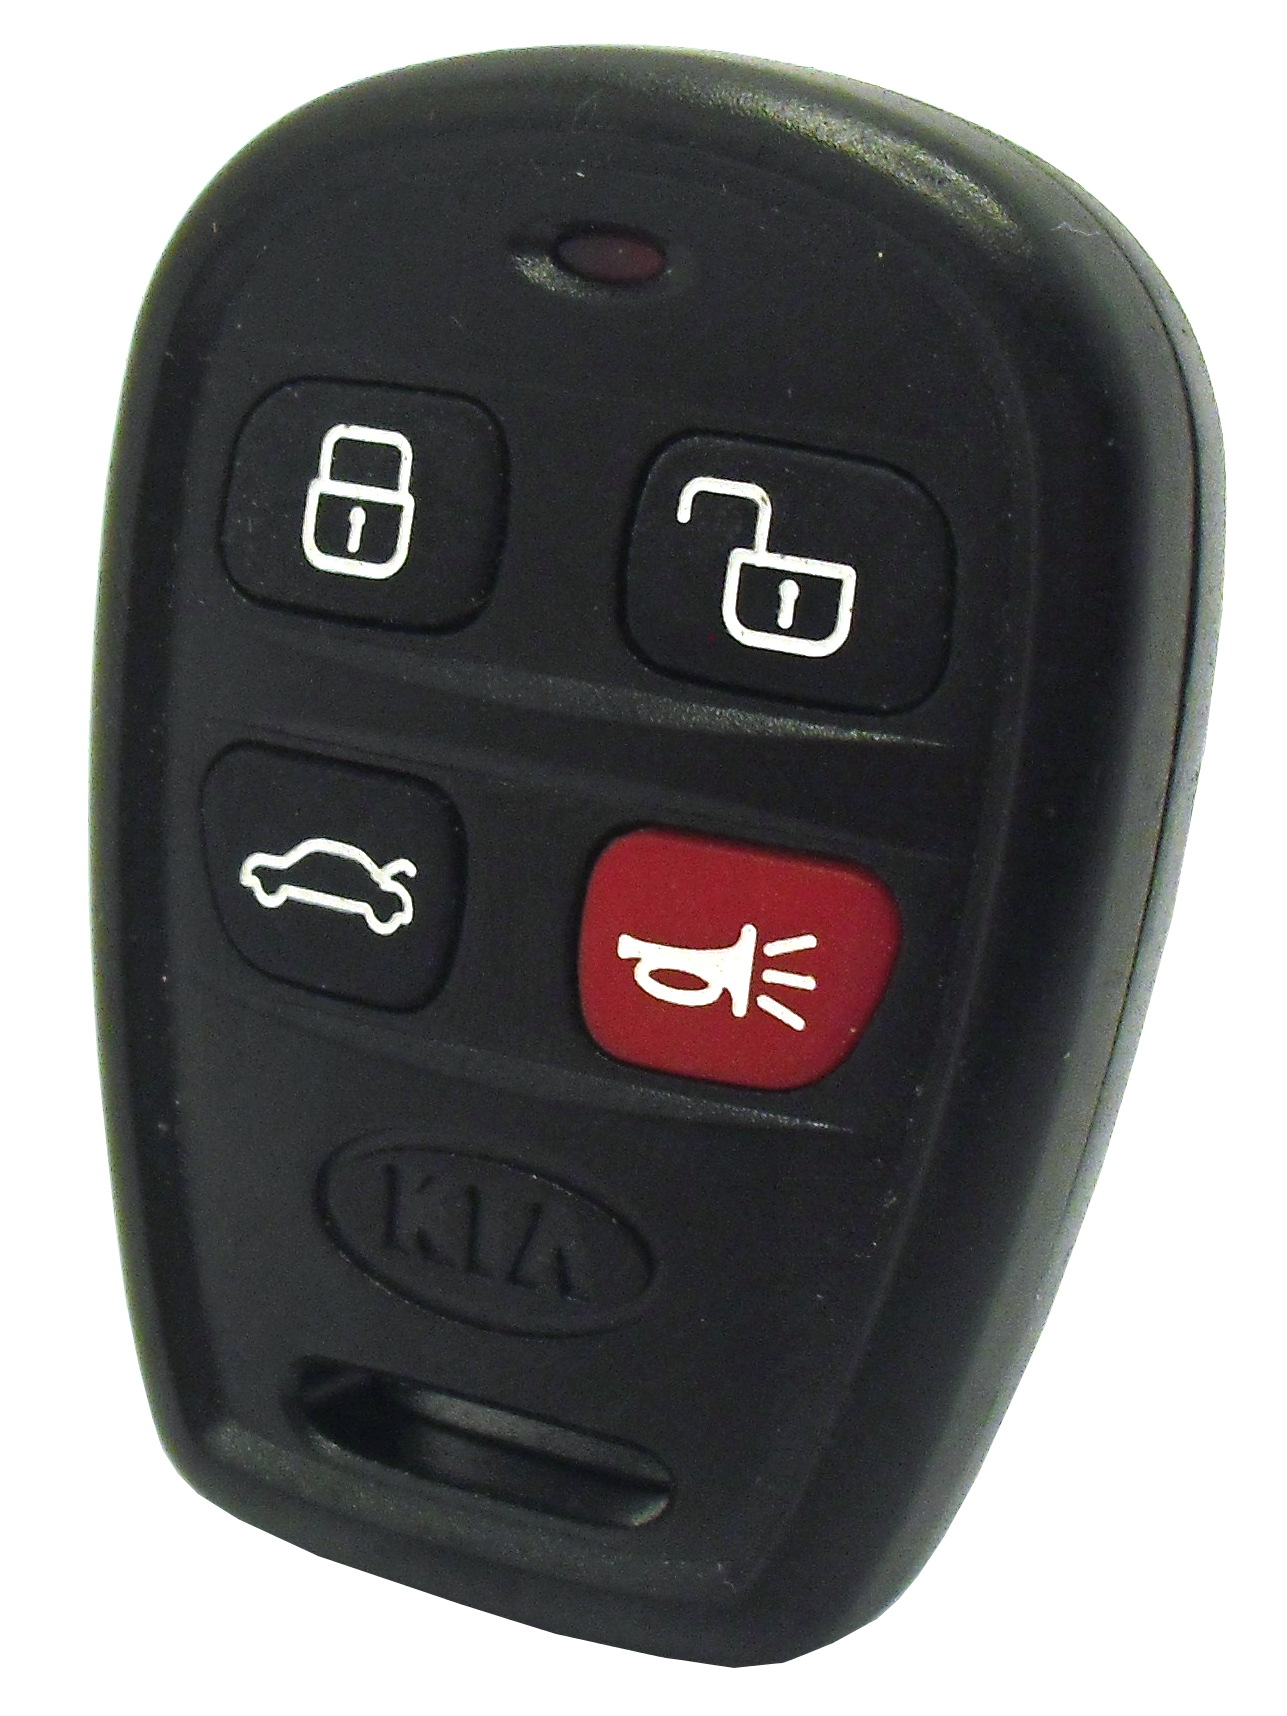 Kia Keyless Entry Remote - 4 button